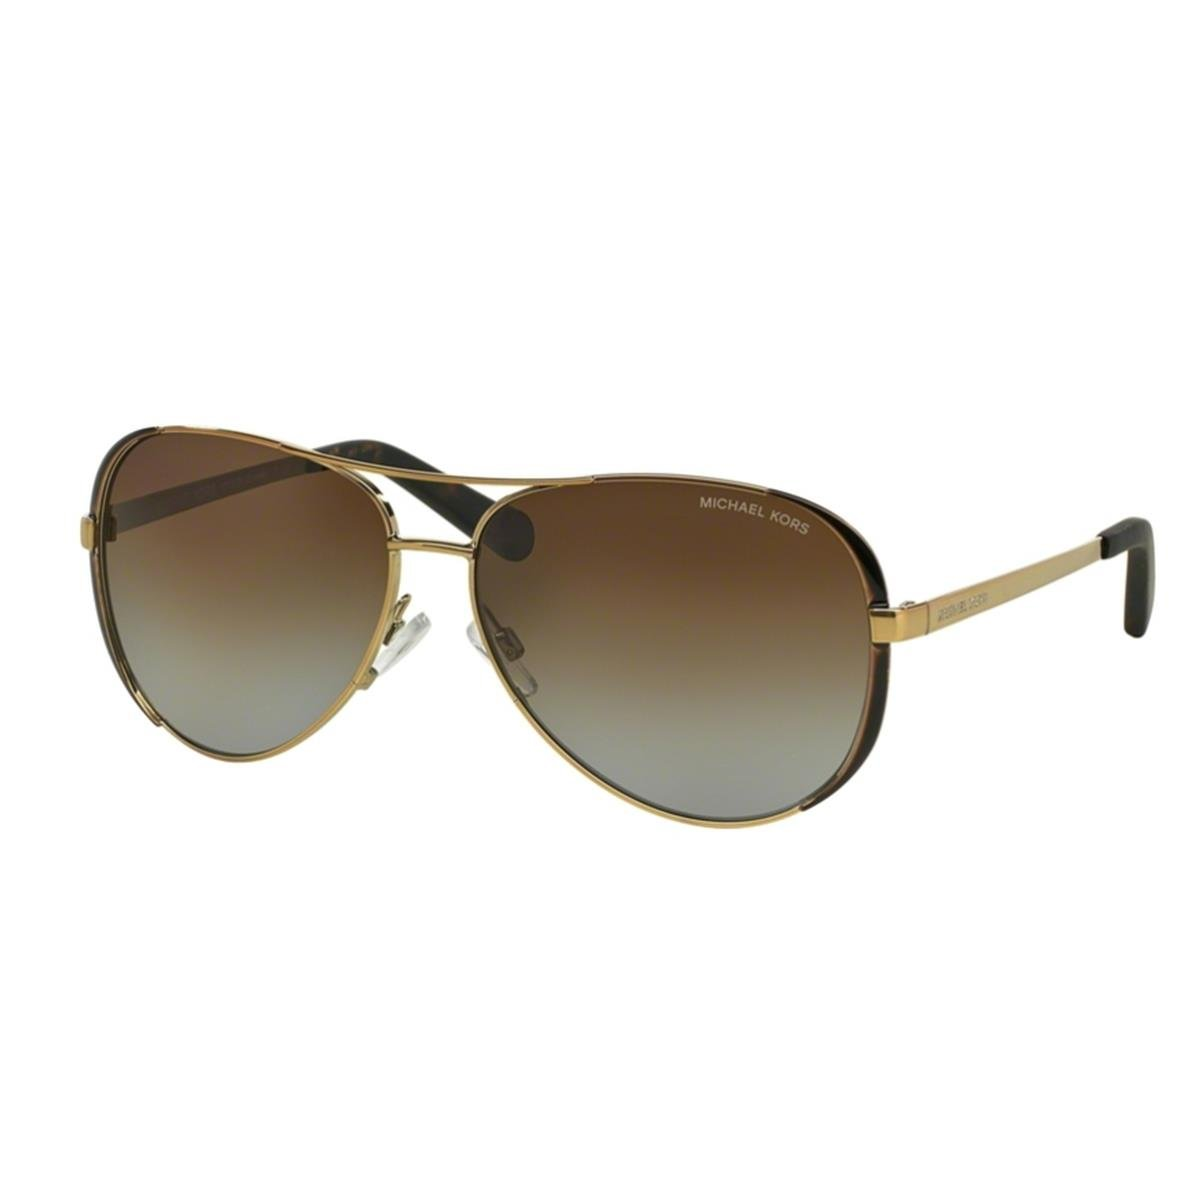 0bb1314a0b75 Michael Kors Chelsea Aviator Sunglasses in Rose Gold Blue Mirror MK5004  100325 59  Amazon.ca  Clothing   Accessories